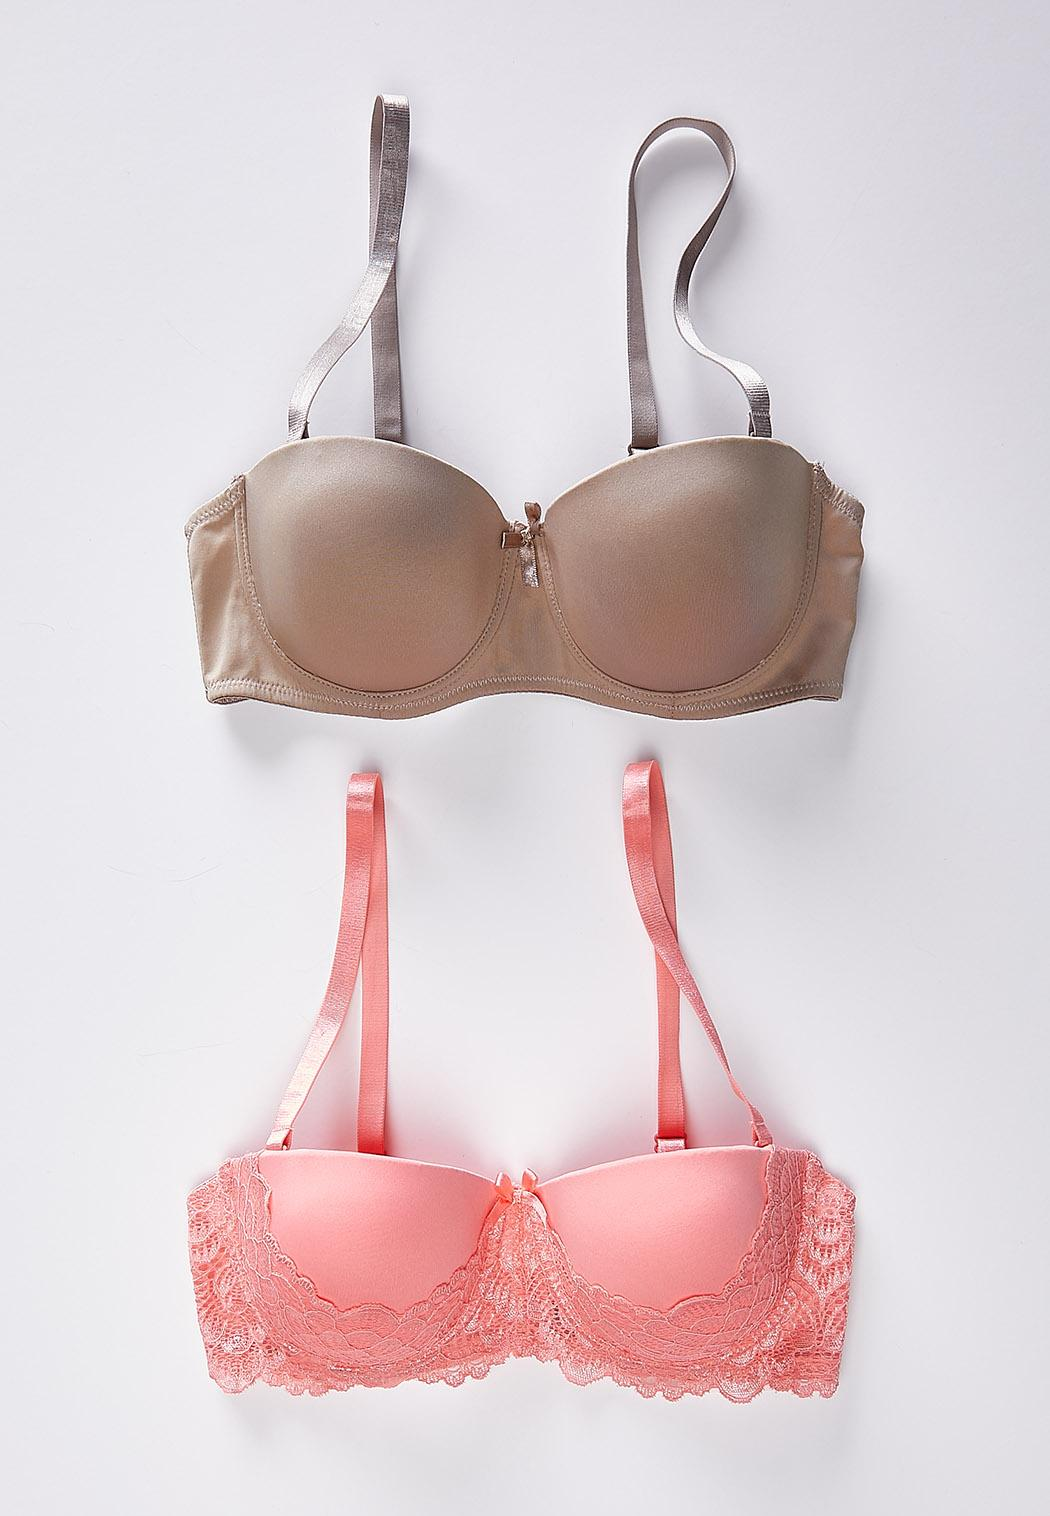 7704c98f8e Plus Size Coral And Taupe Convertible Bra Set Bras Cato Fashions